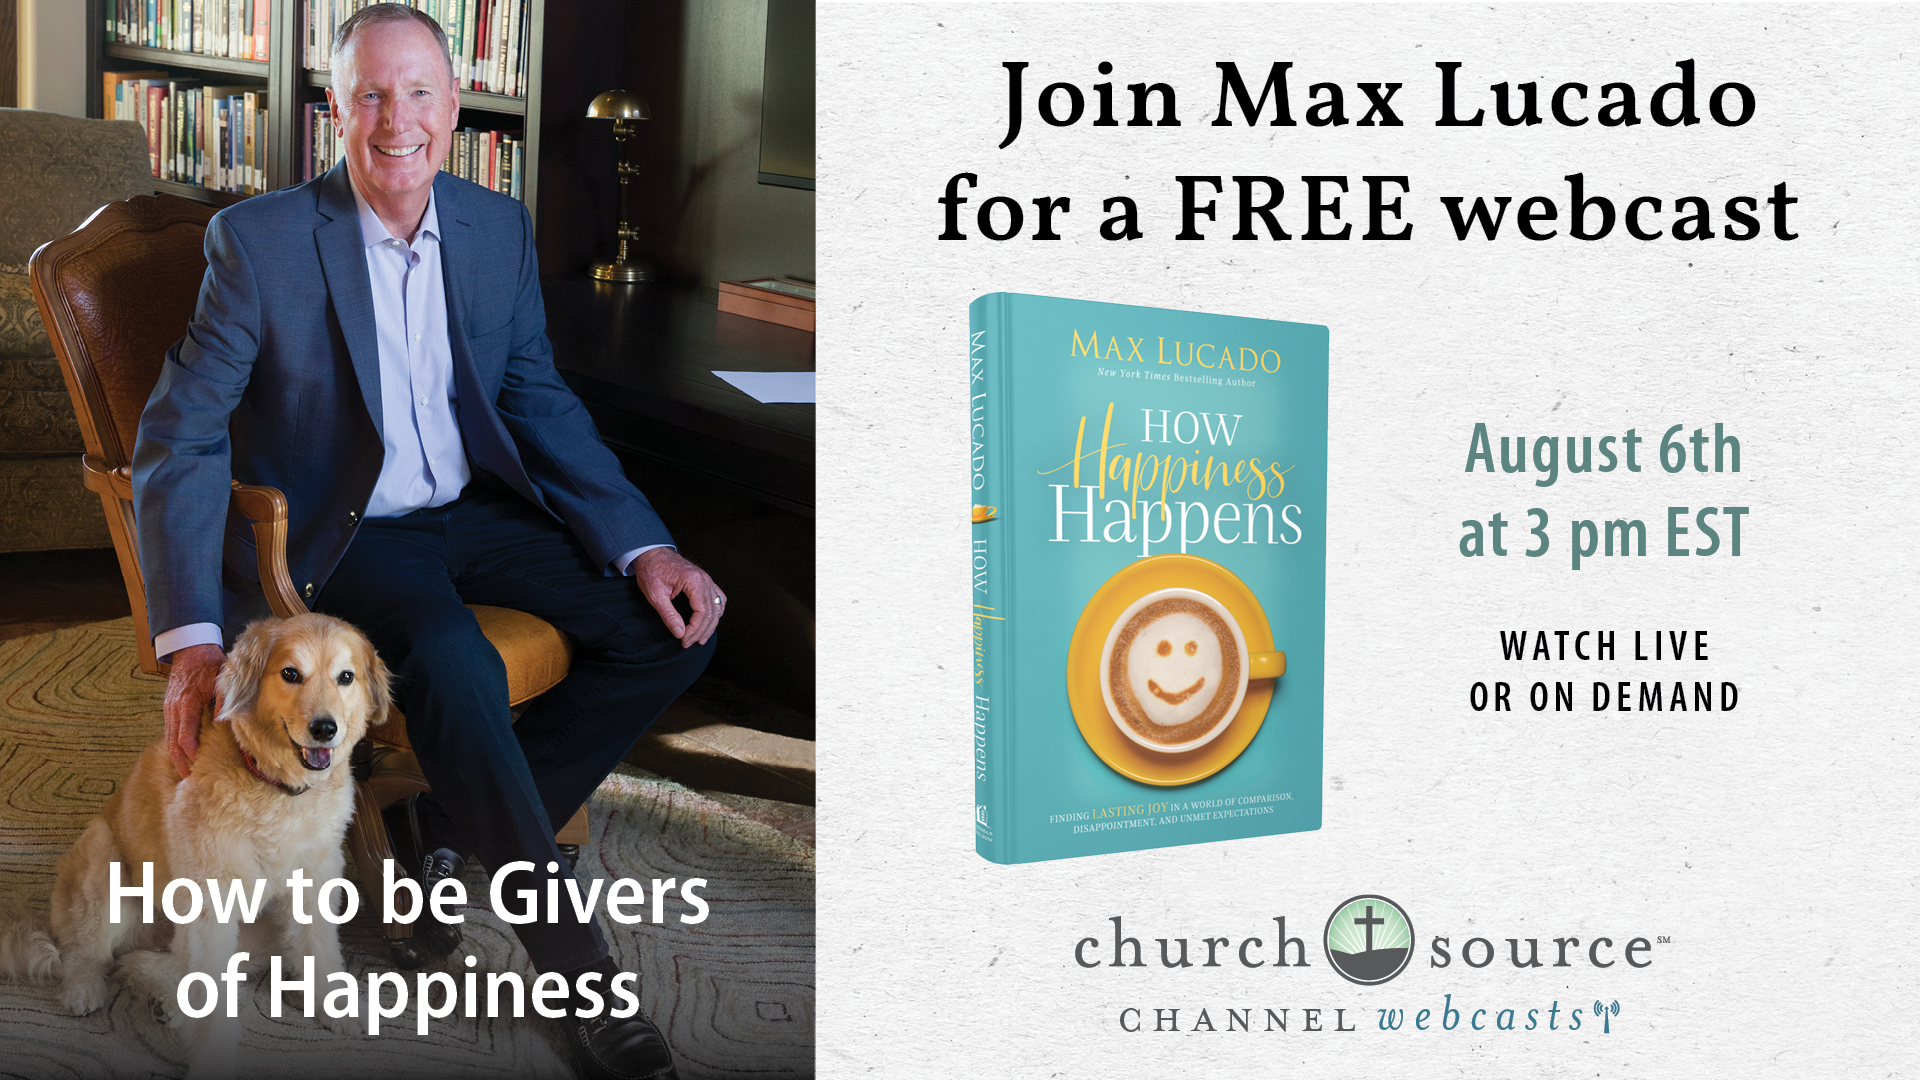 How to be Givers of Happiness - Webcast with Max Lucado